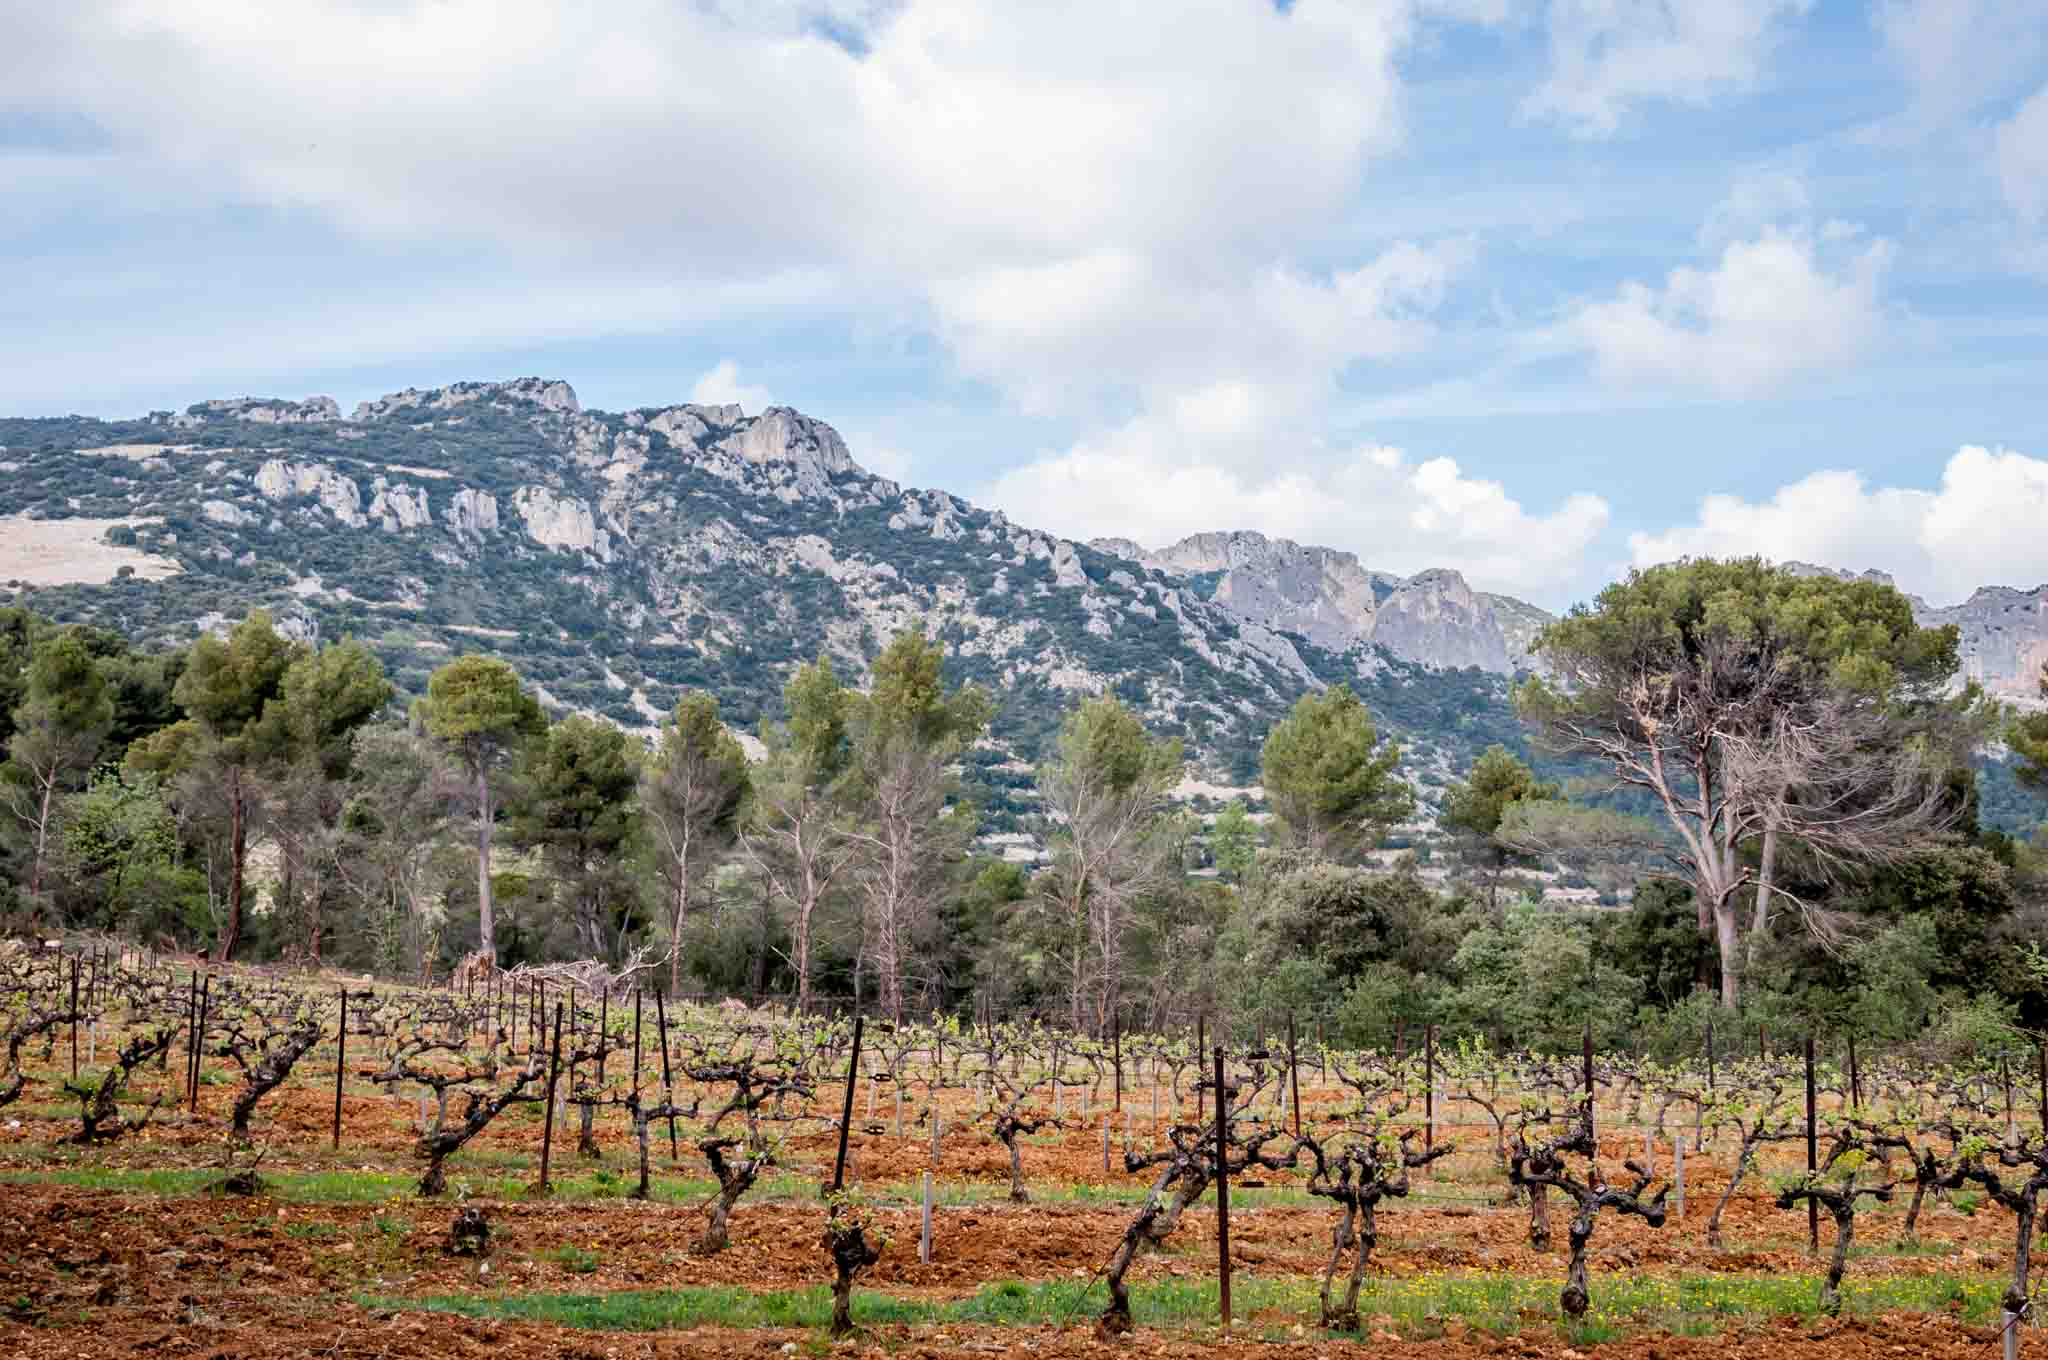 The vineyards and mountains of the Cotes du Rhone. Driving through this beautiful region - famous for its wine and views - is one of the best things to do in Provence.